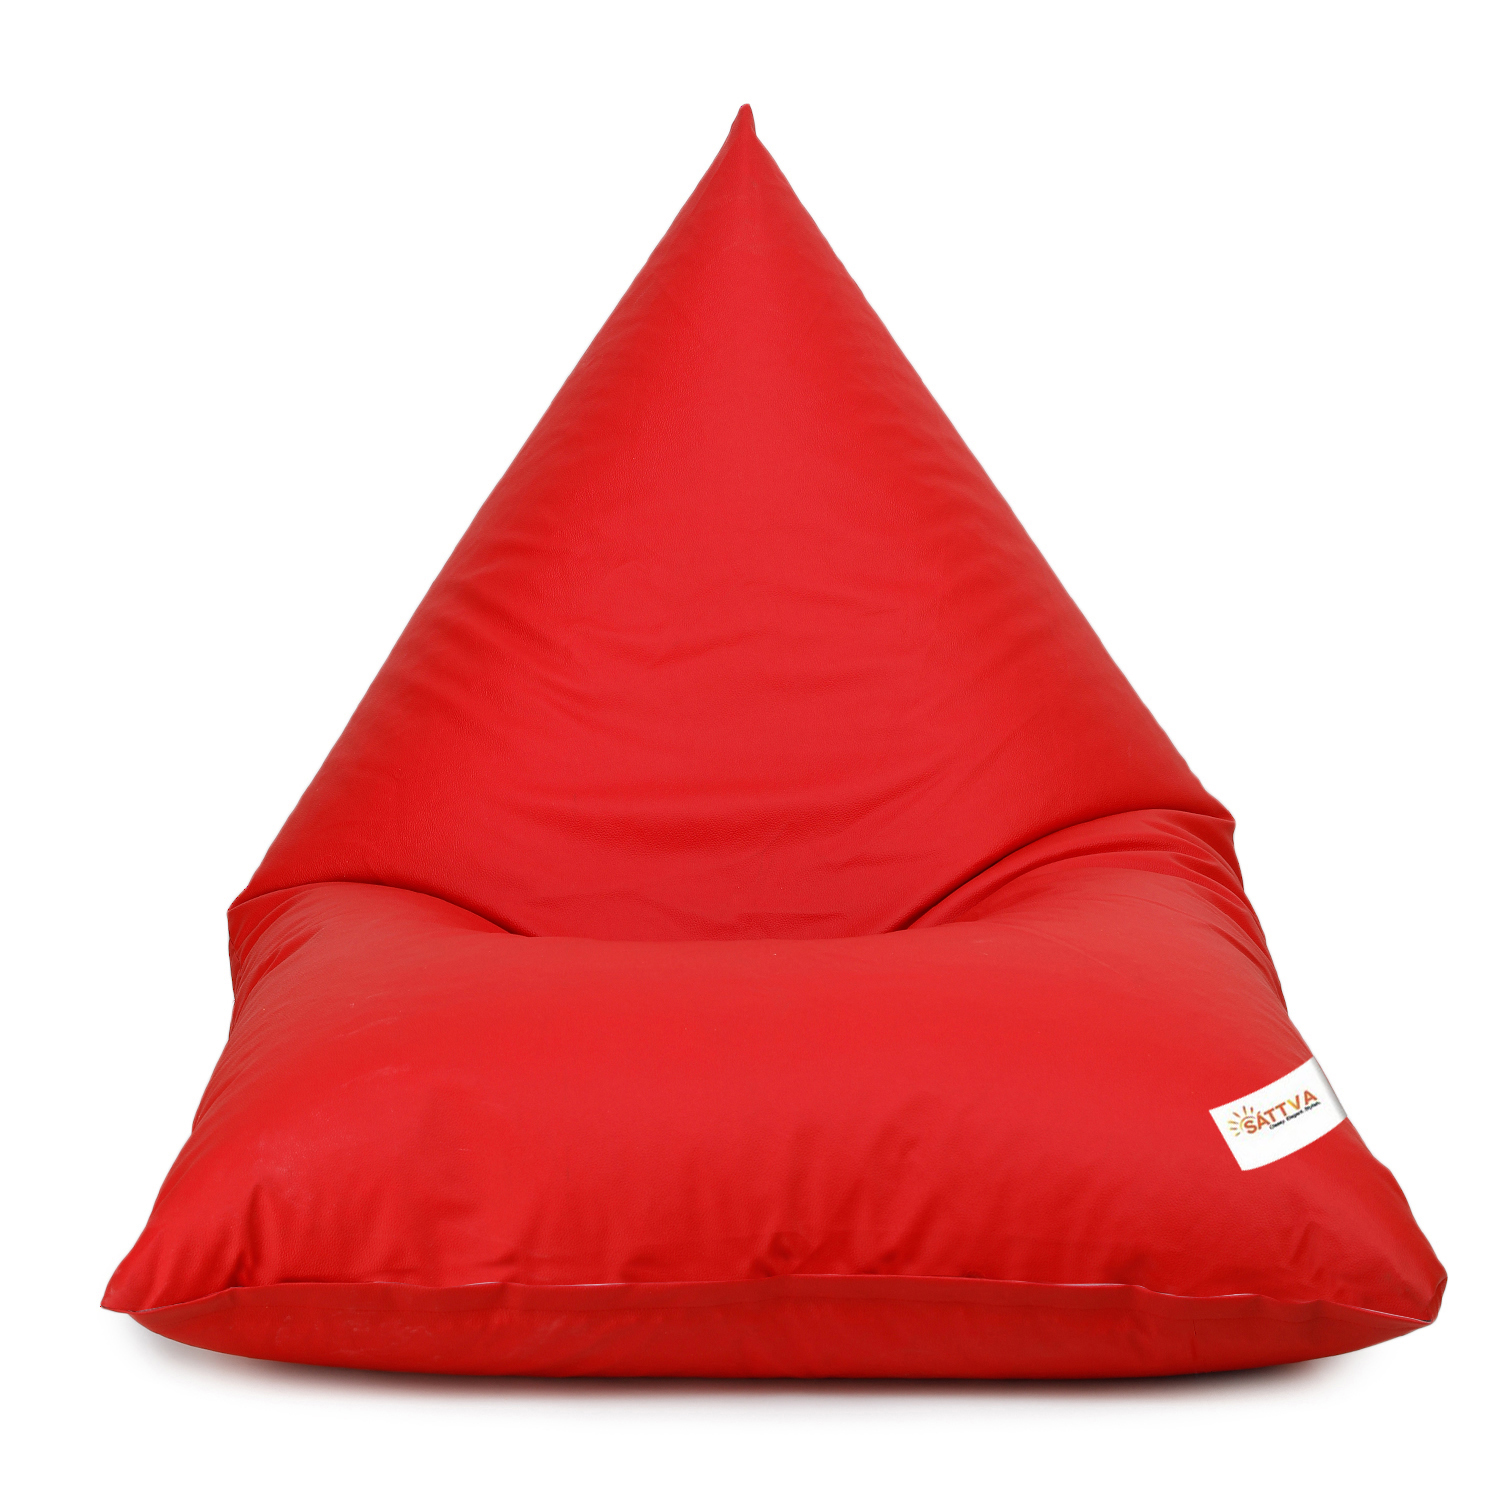 Sattva Triangle Shaped Bean Bag Chair Filled (with Beans) Colour - Red